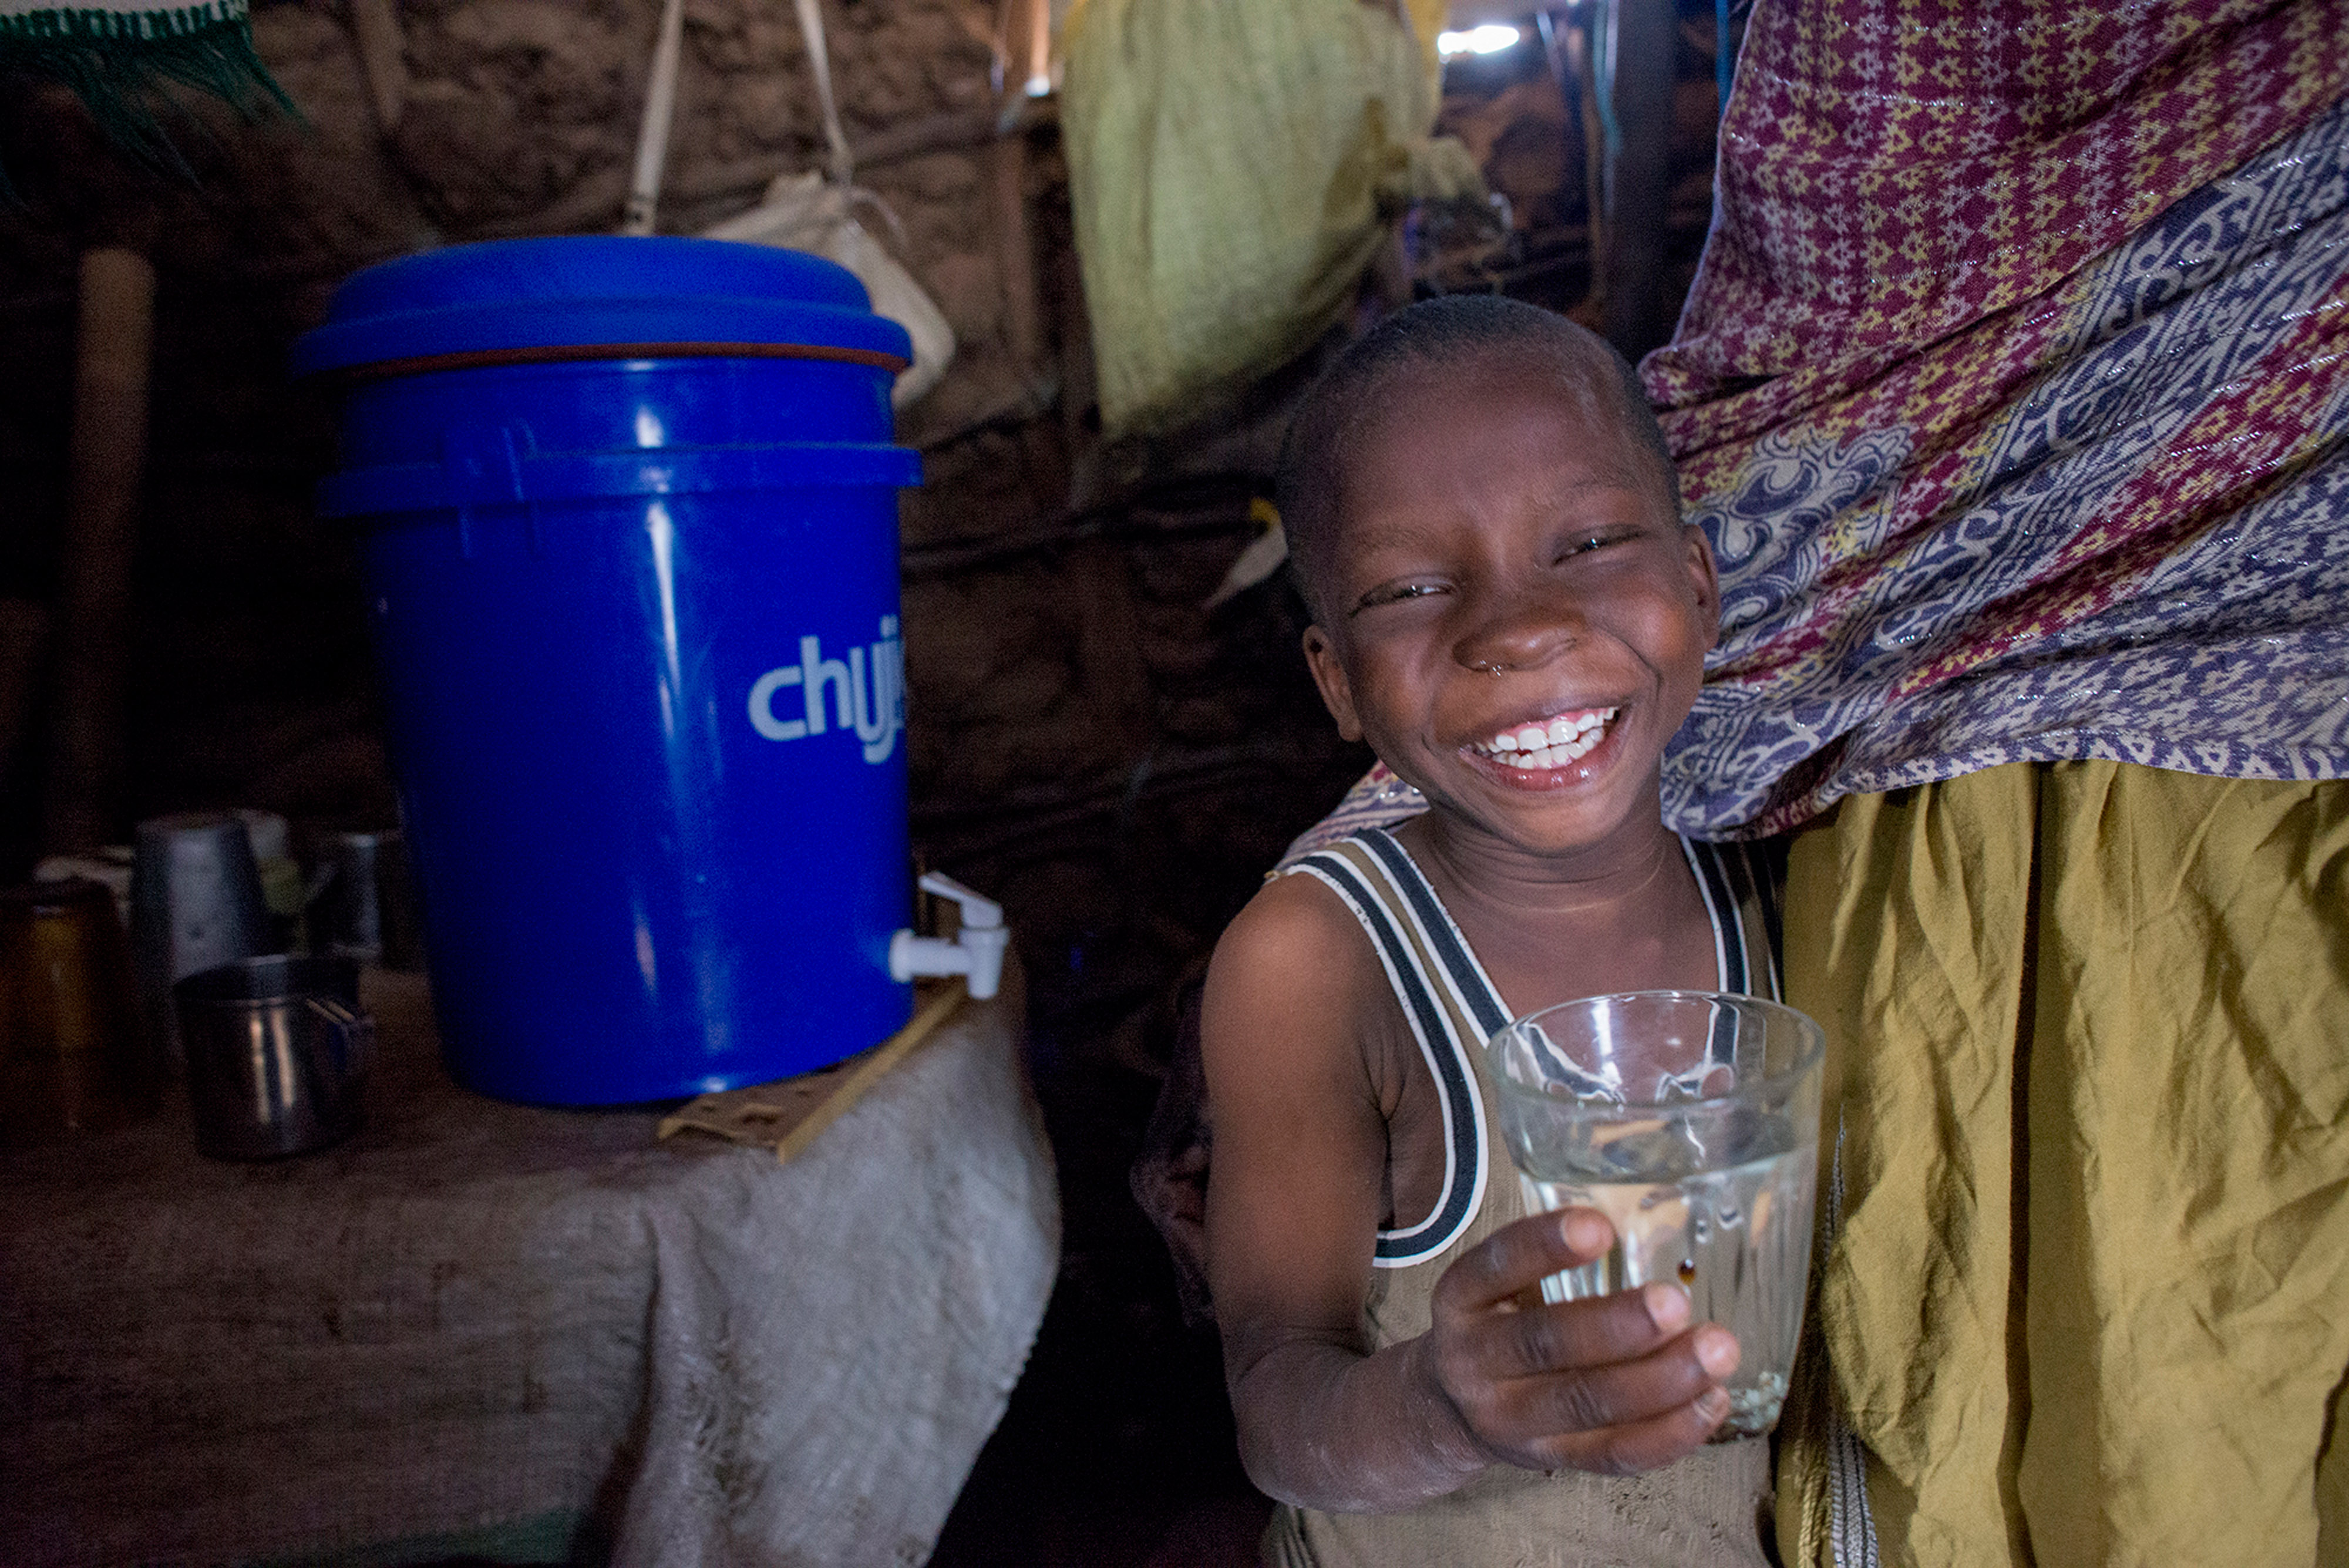 a boy smiles holding a water glass